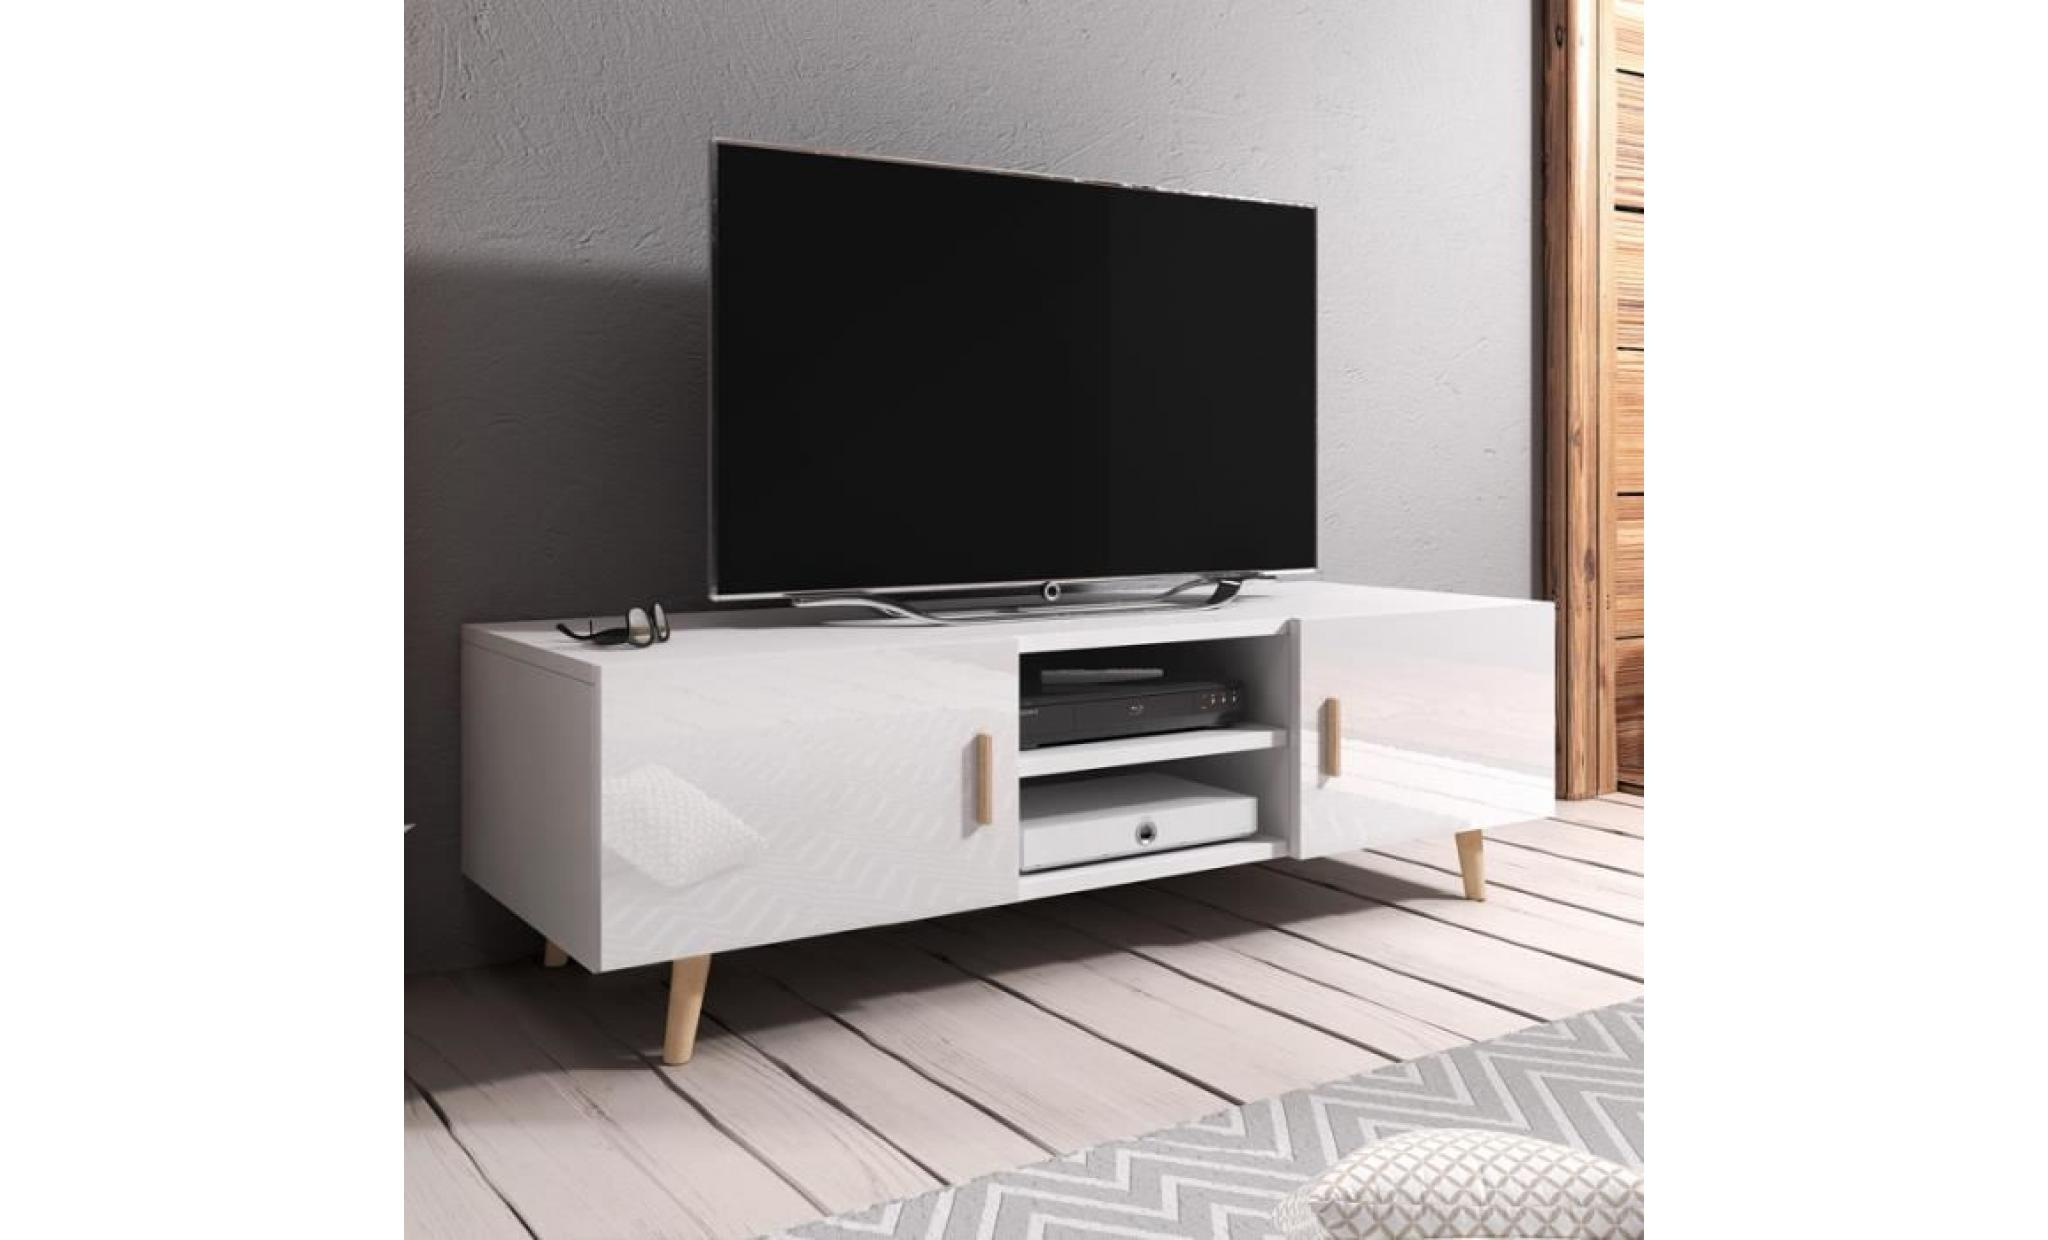 Meuble Tv 140 Cm Blanc Meuble Tv Meuble De Salon Rivano Ii 140 Cm Blanc Mat Blanc Brillant Style Scandinave Style Minimaliste